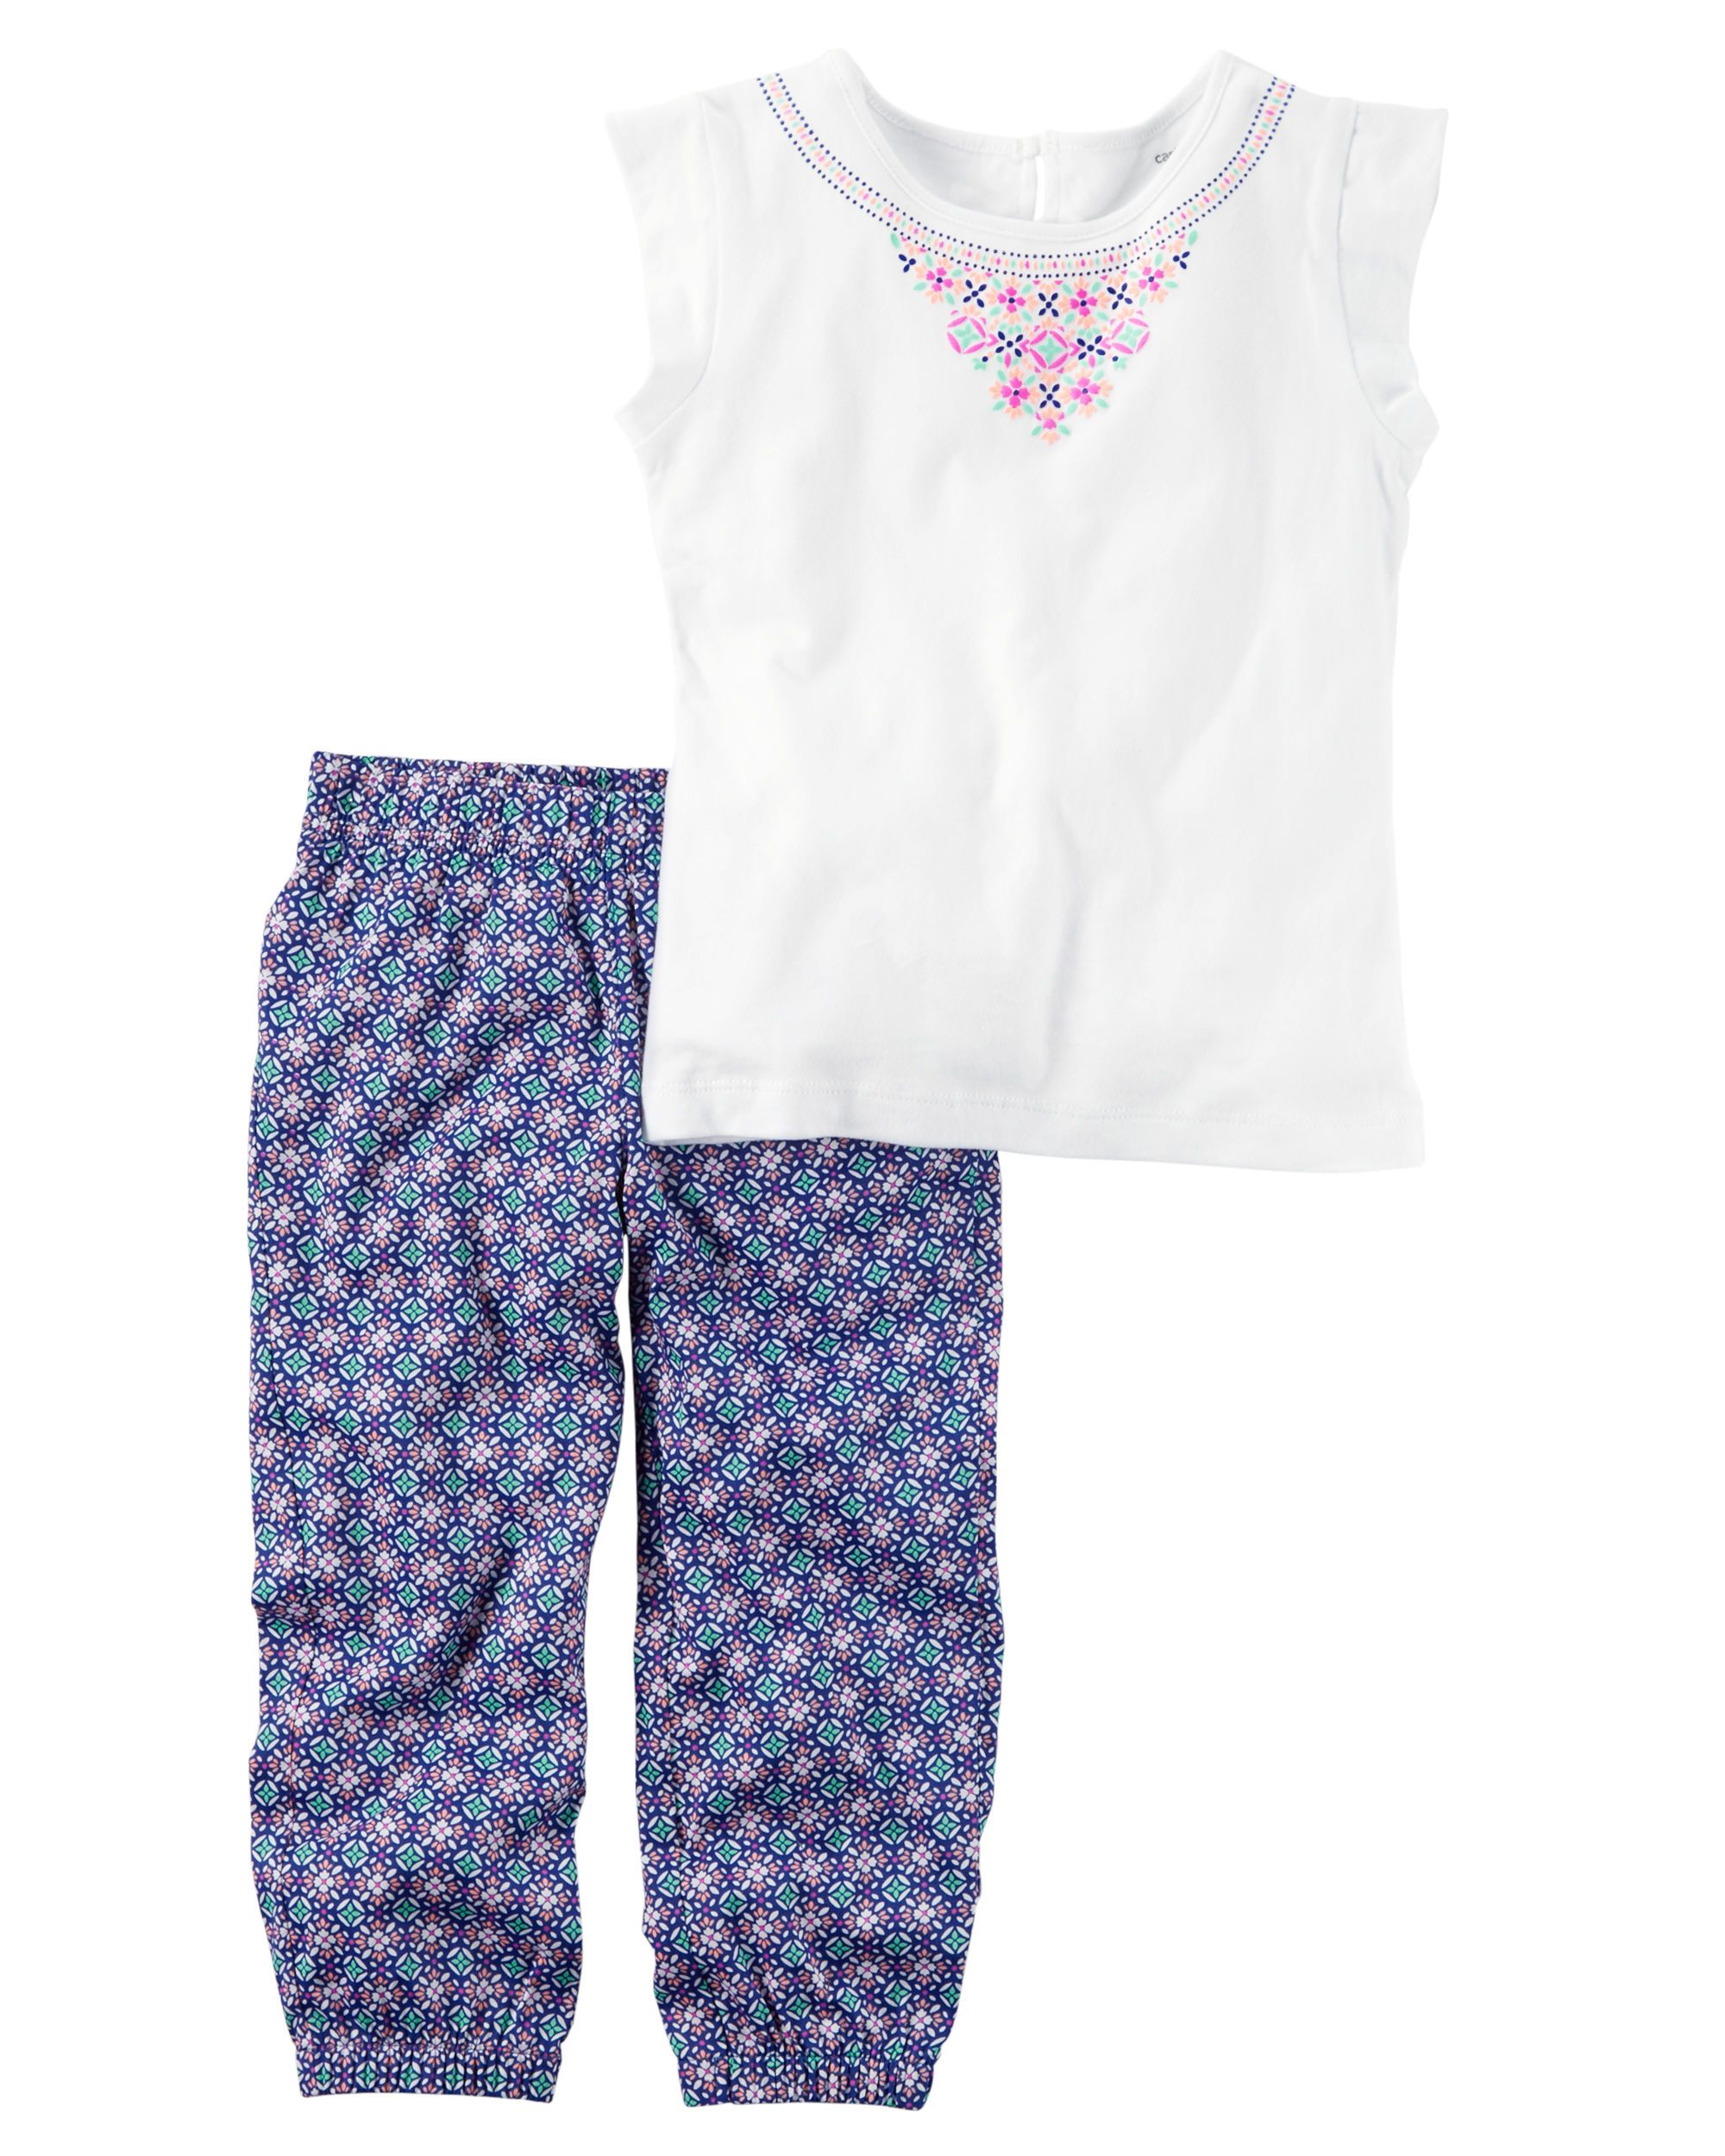 Baby Girl 2-Piece Open-Back Top & Printed Jogger Set Featuring a coordinating open-back top and printed joggers, this warm weather combo has her dressed in a breeze.